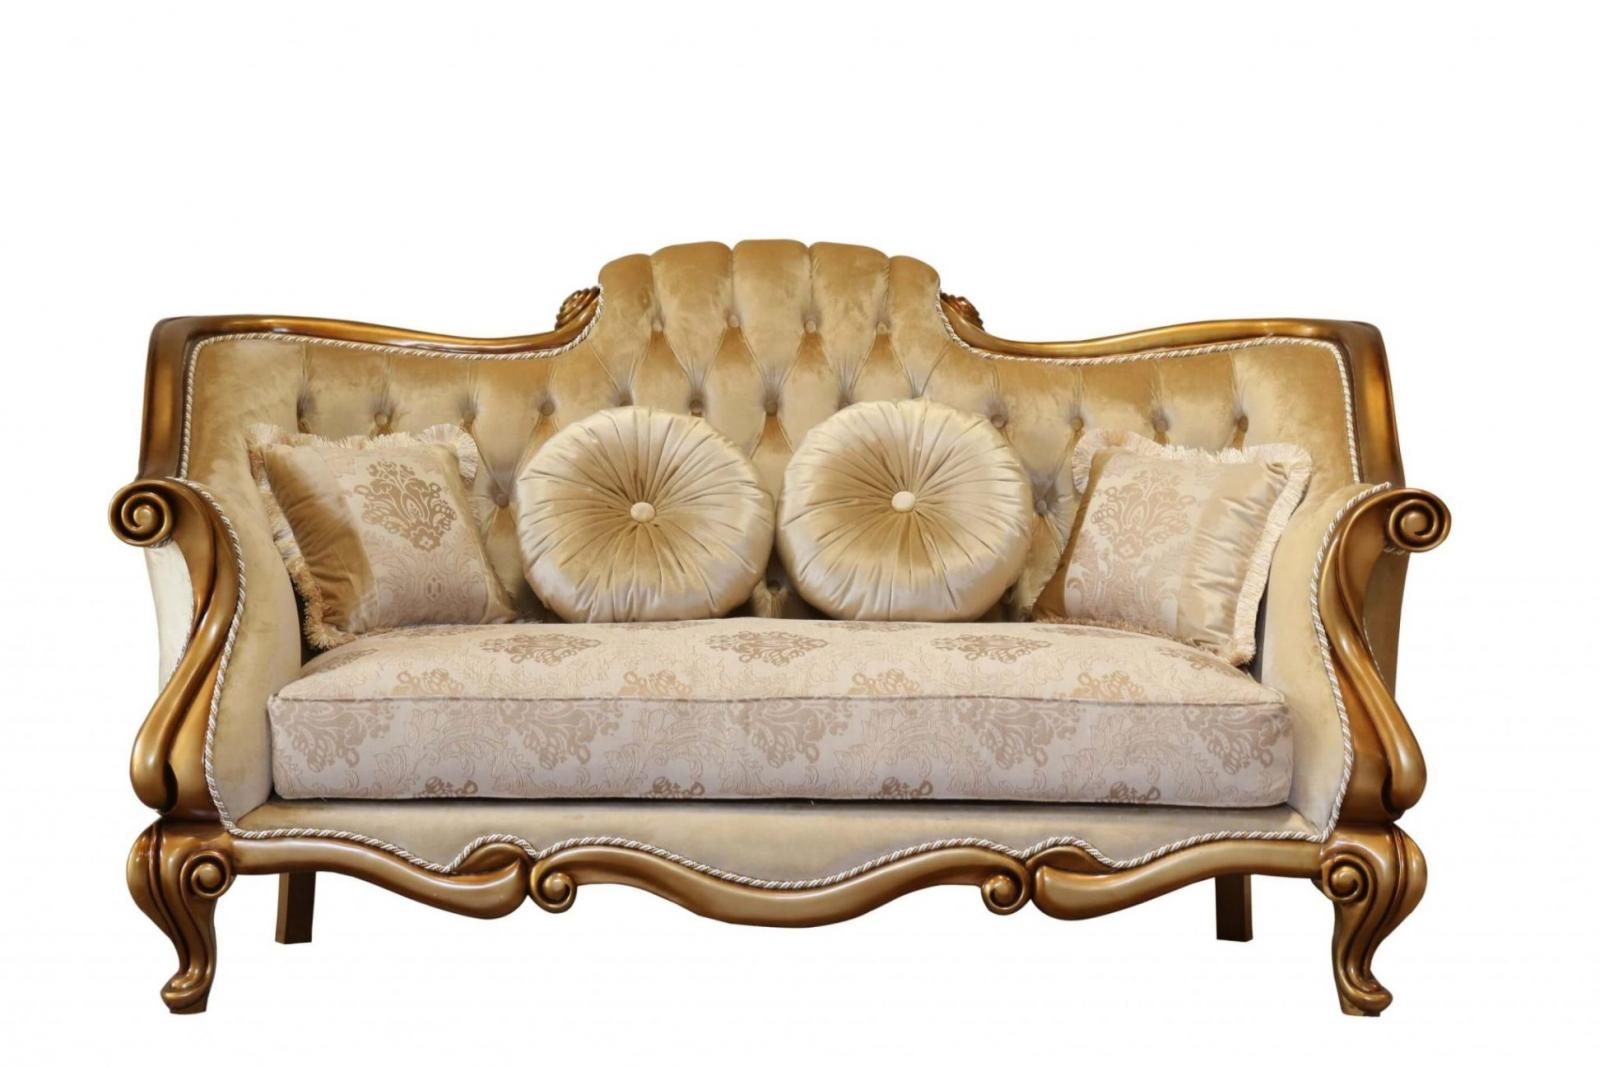 Classic  Traditional Bronze  Gold Wood  Solid Hardwood and Fabric Loveseat EUROPEAN FURNITURE 41951-L